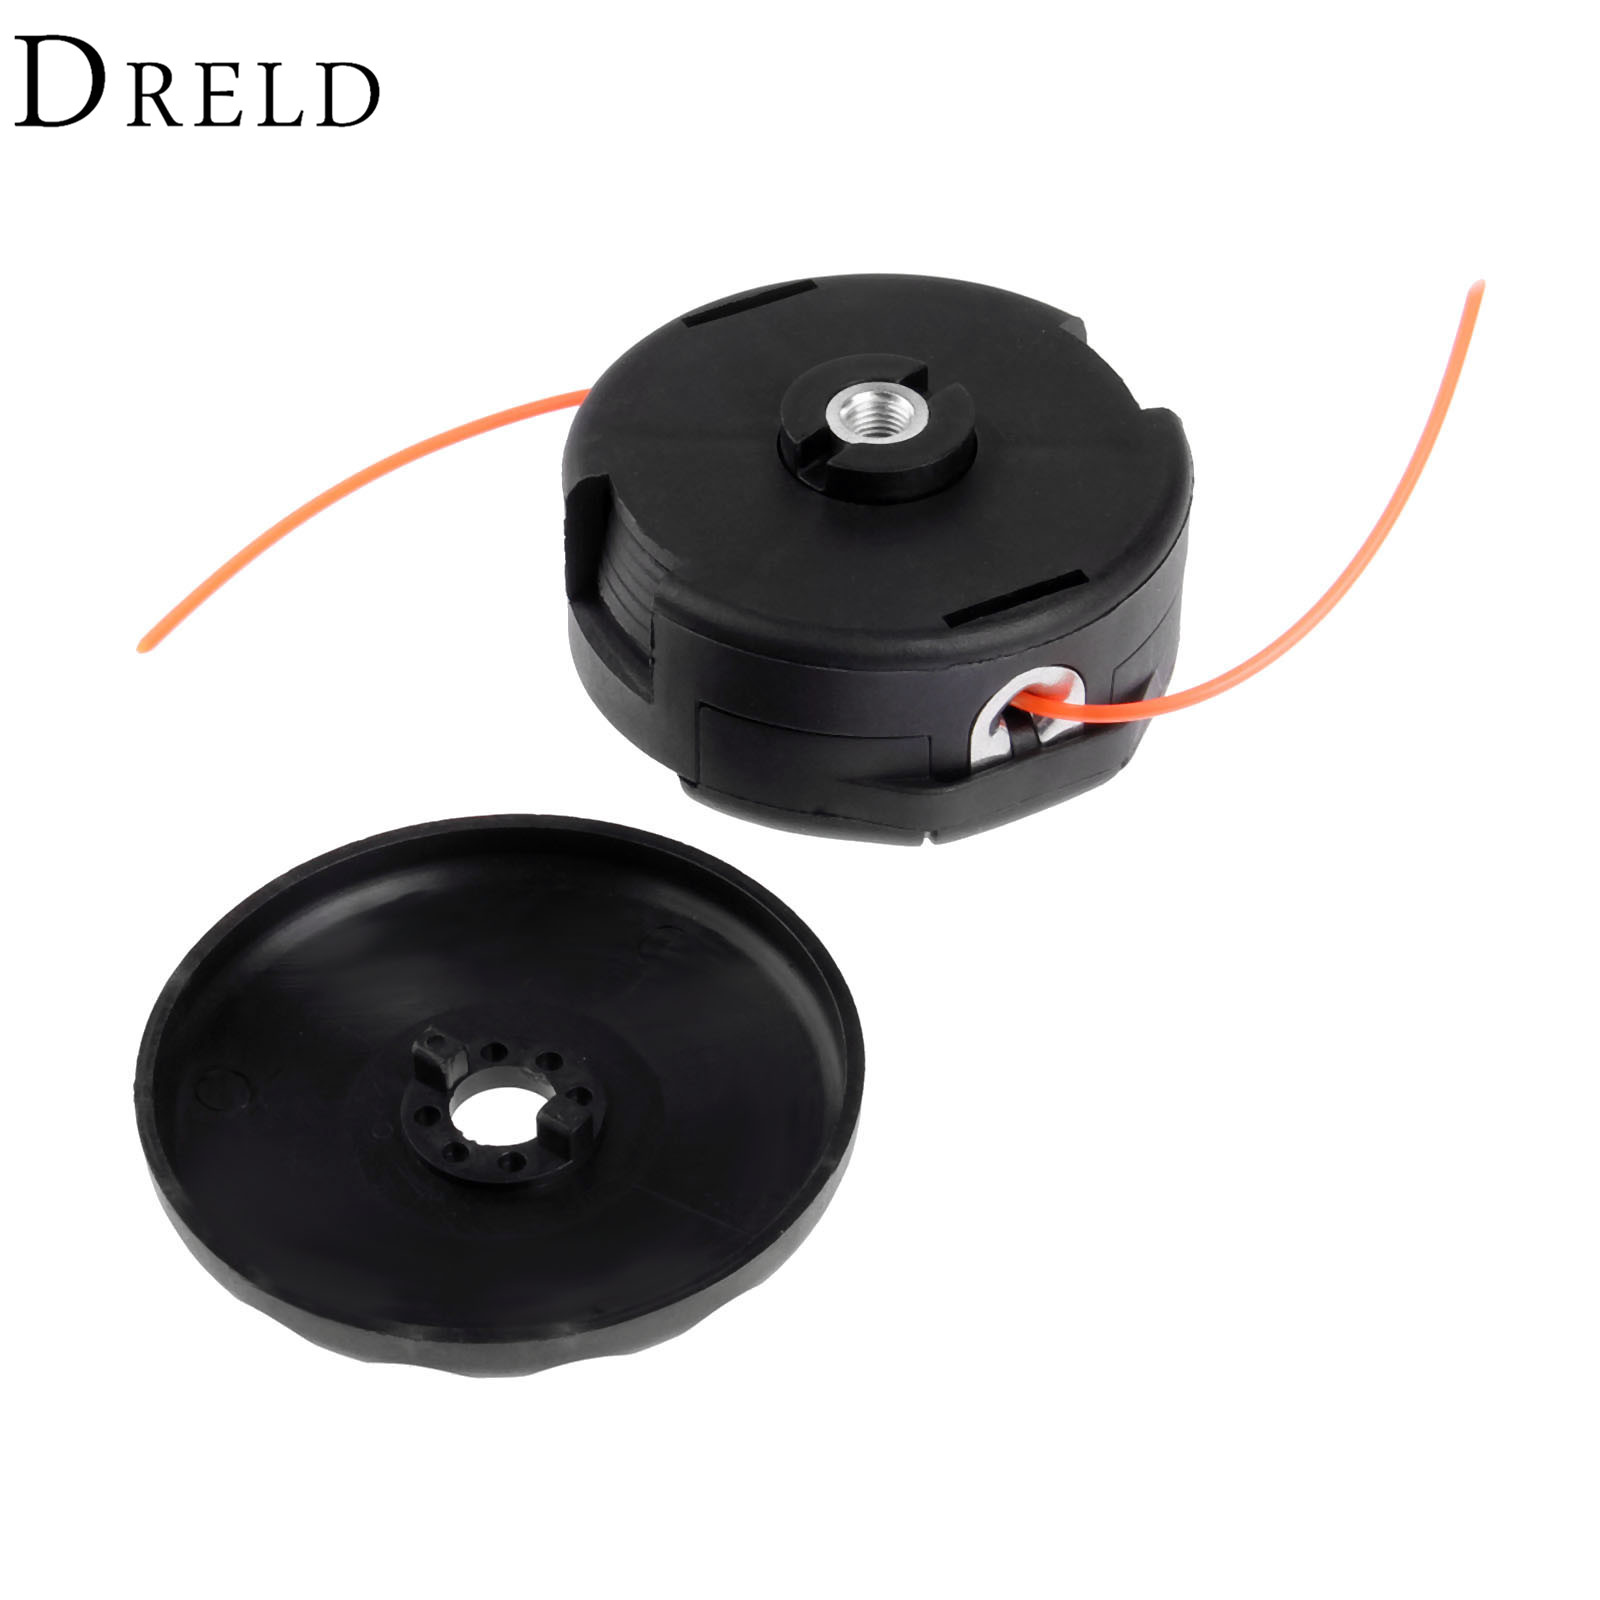 DRELD Black Speed Feed 400 Universal String Trimmer Head Adaptor M10*1.25LH Female with 2.4mm Trimmer Line Garden Tool Parts head speed 25 gr07 234856